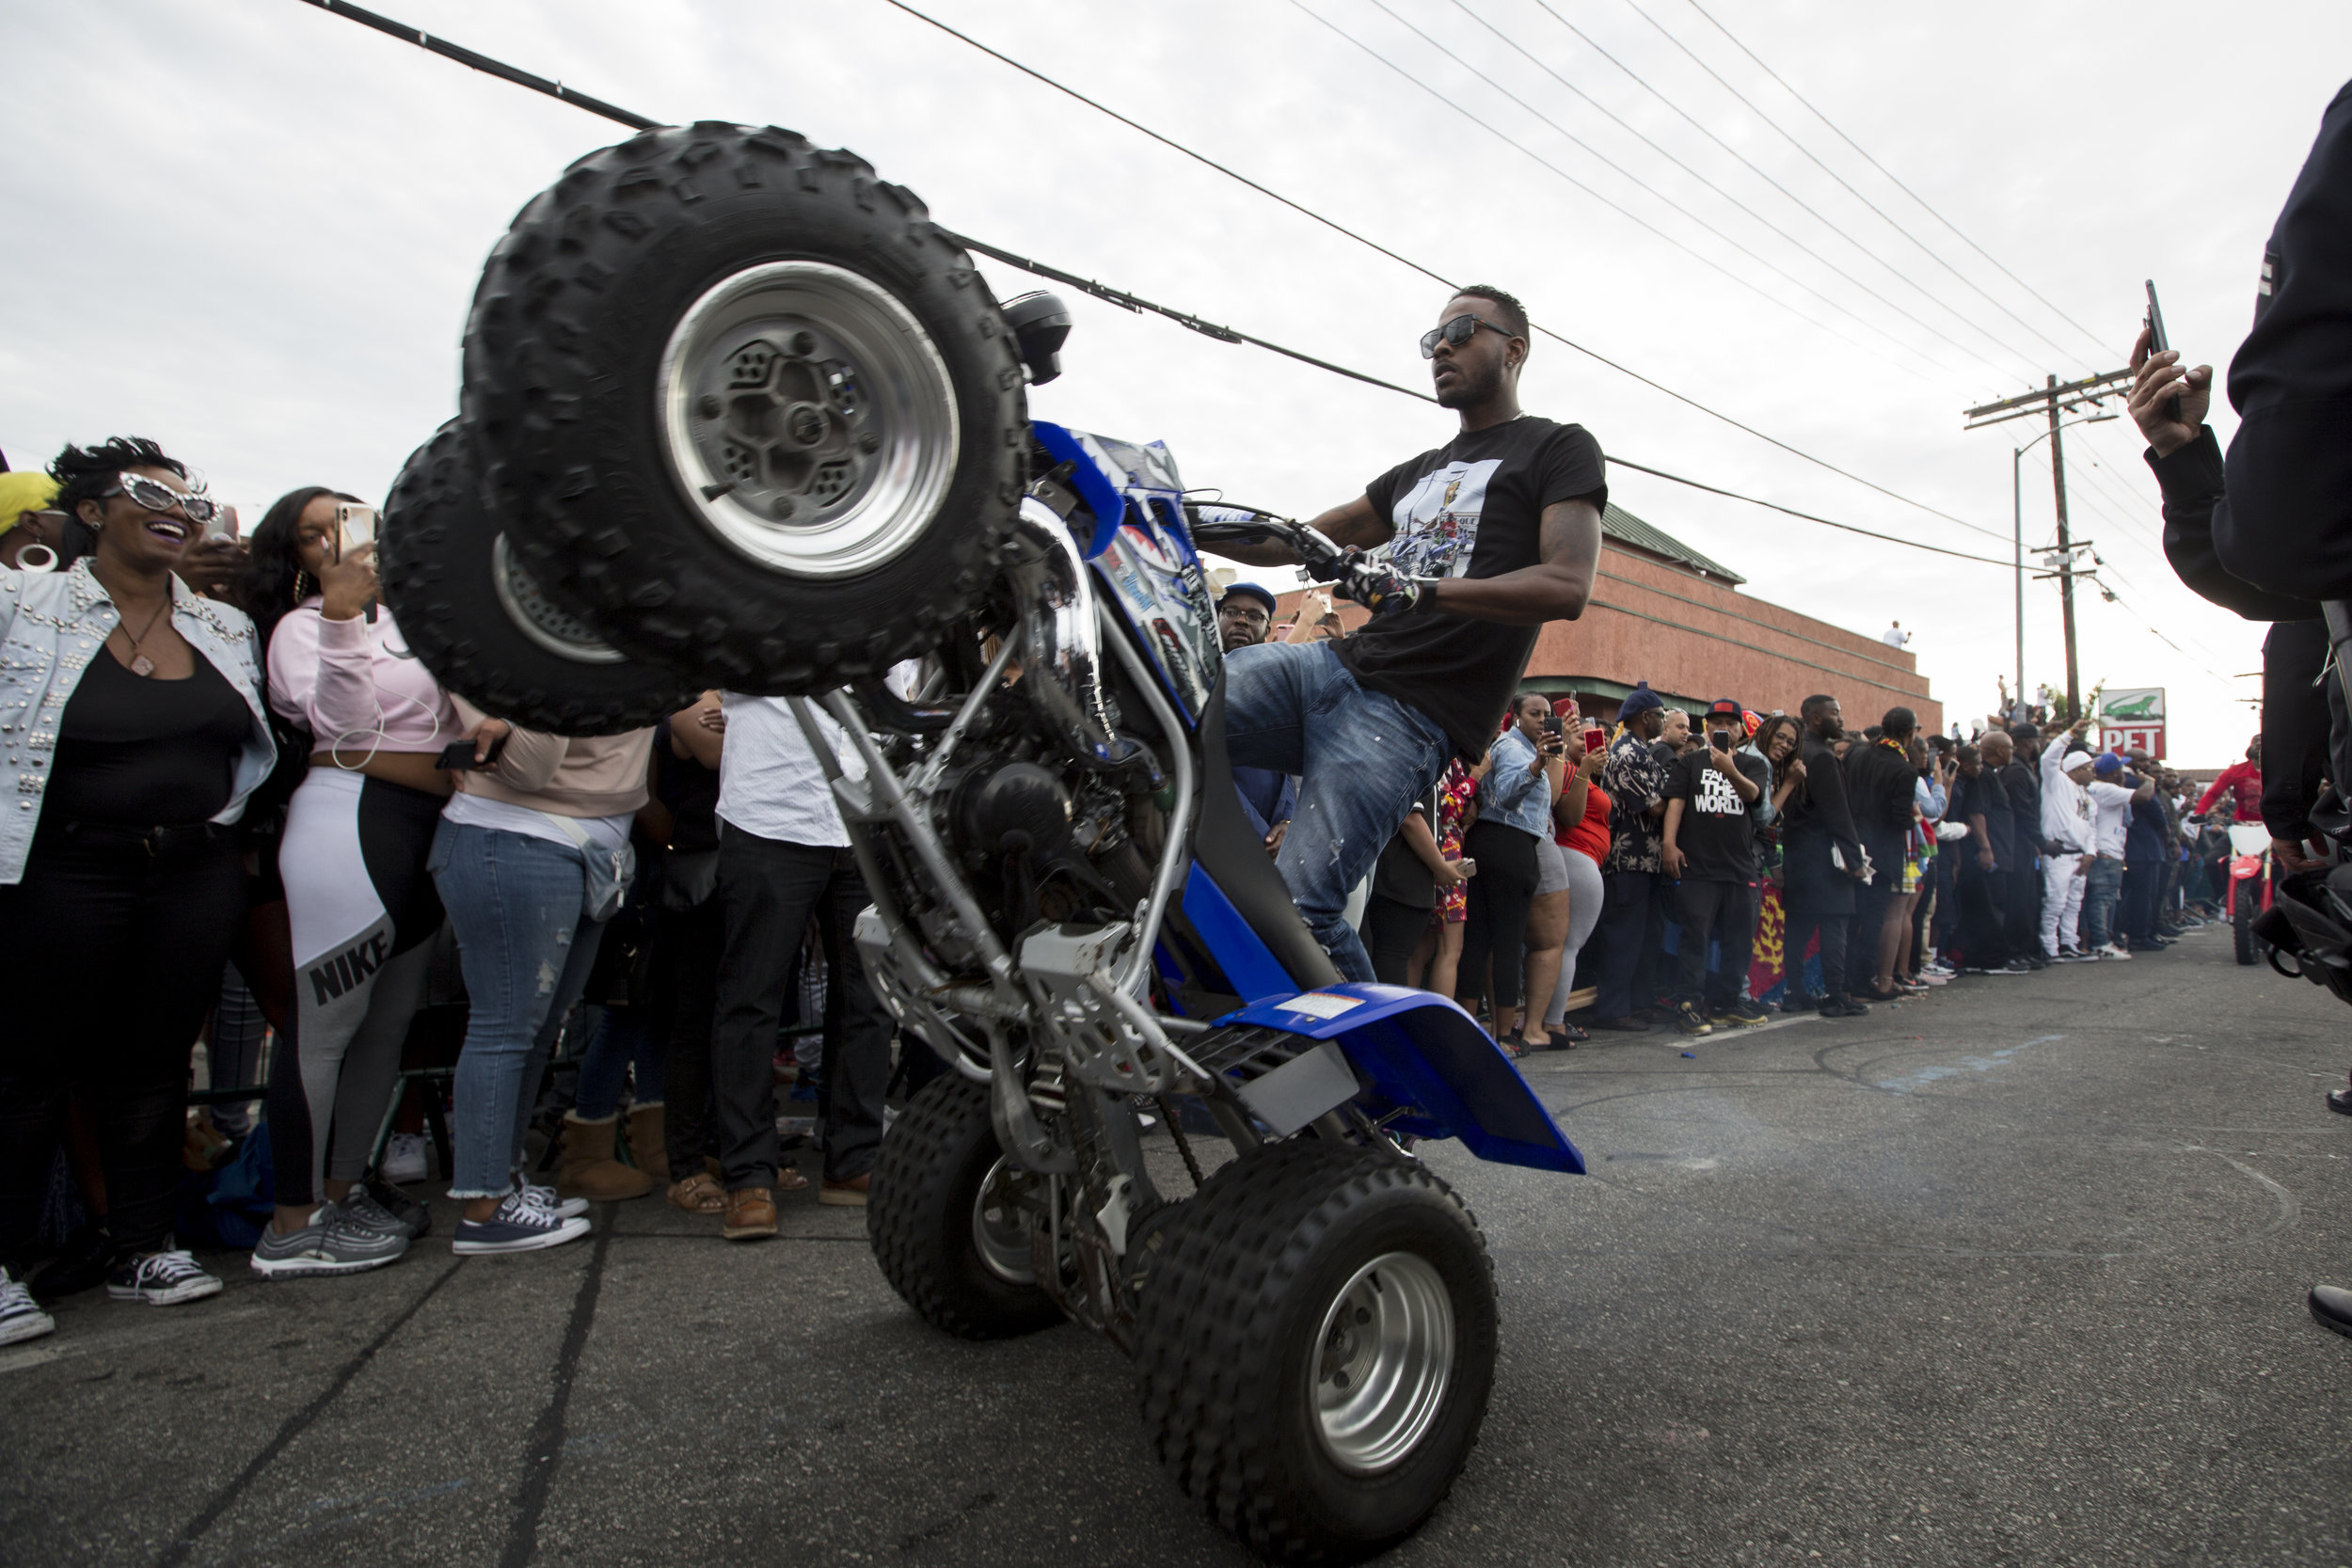 """An ATV pulls a wheelie in front of fans who turned out for the Celebration of Life procession to say goodbye to Nipsey Hussle along Slauson Ave. near The Marathon Clothing store, the location of his murder, in Los Angeles, California on April 11, 2019.  The hearse carrying the casket of the slain rapper, Nipsey Hussle, will journey a 25.5 mile """"Victory Lap"""" through South Central and ending at the Angelus Funeral home to allow his fans, who could not attend the ceremony, to say goodbye.  (Jose Lopez)"""